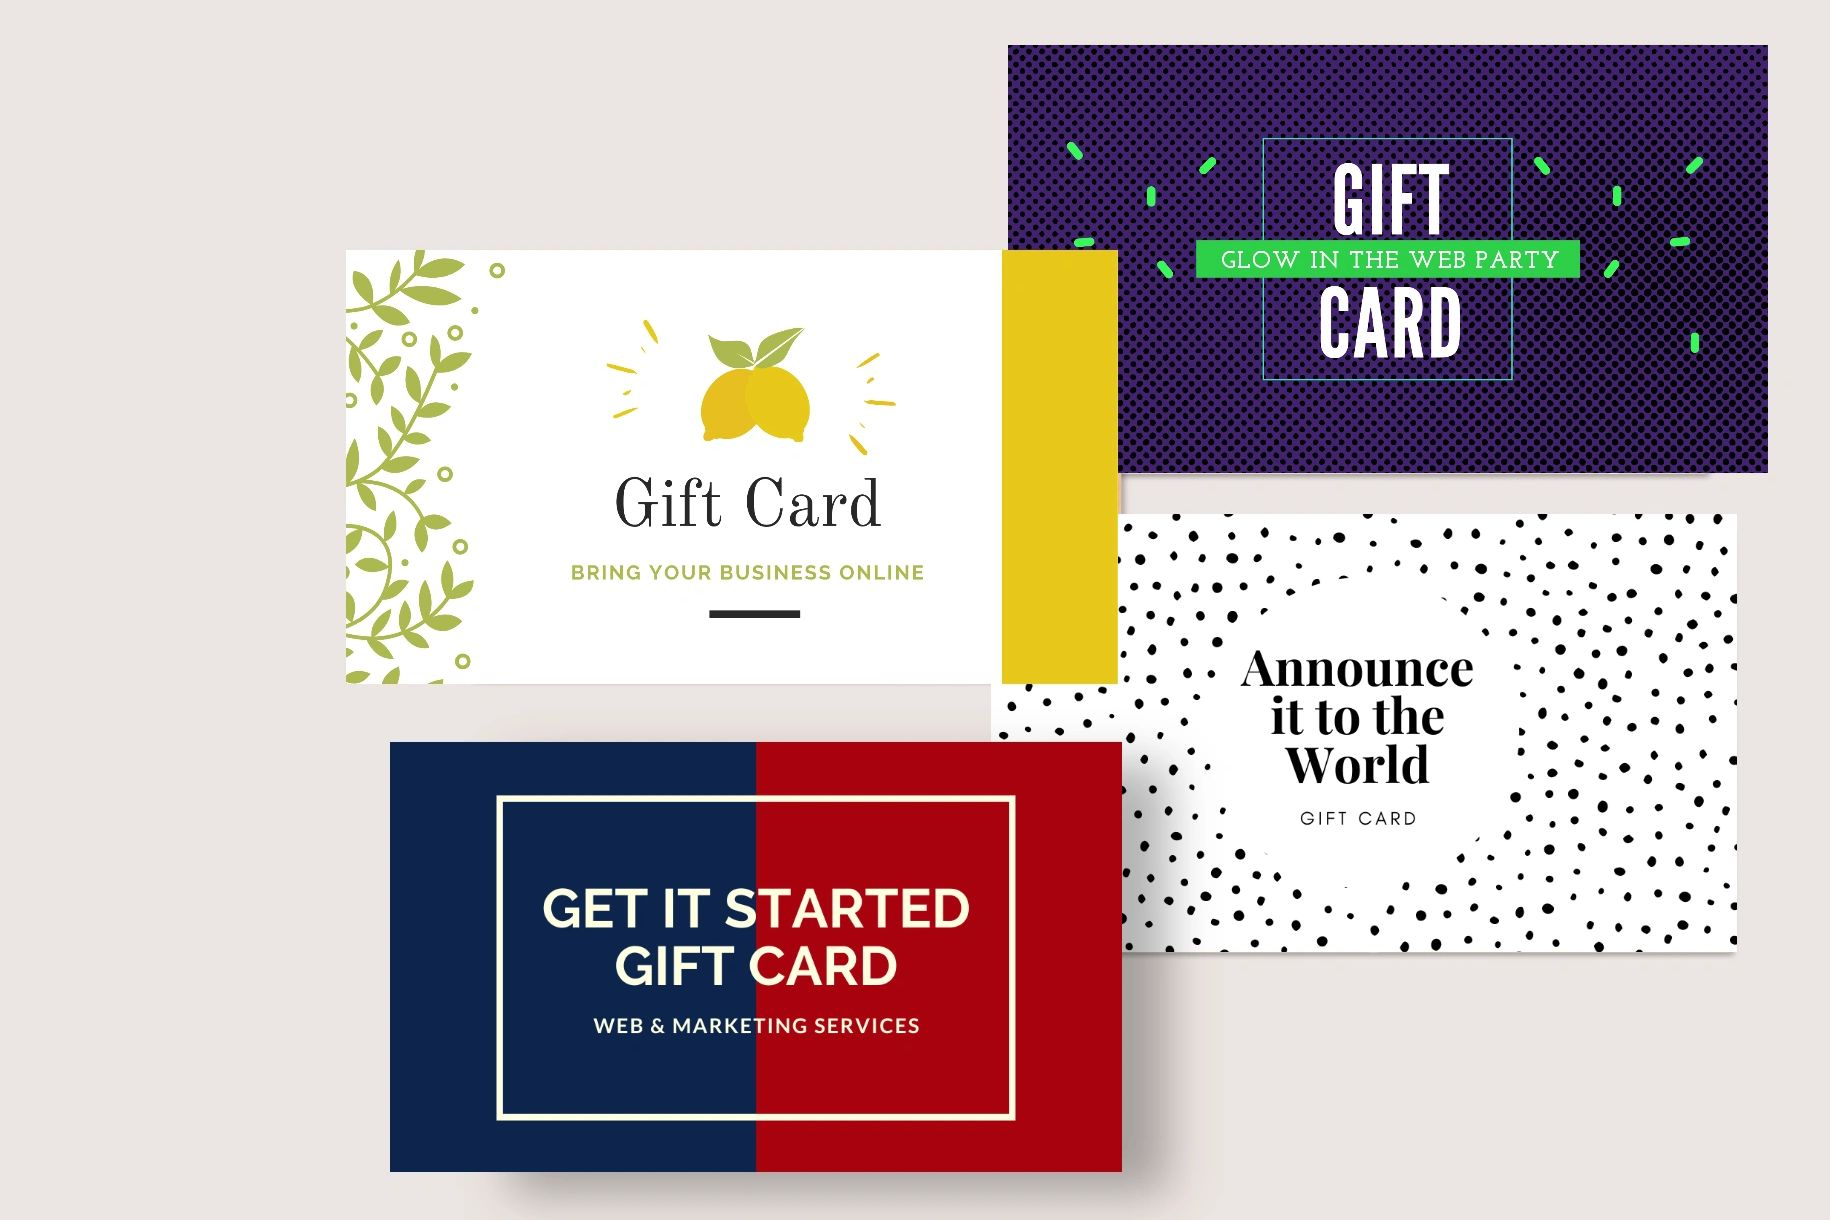 web and marketing gift card